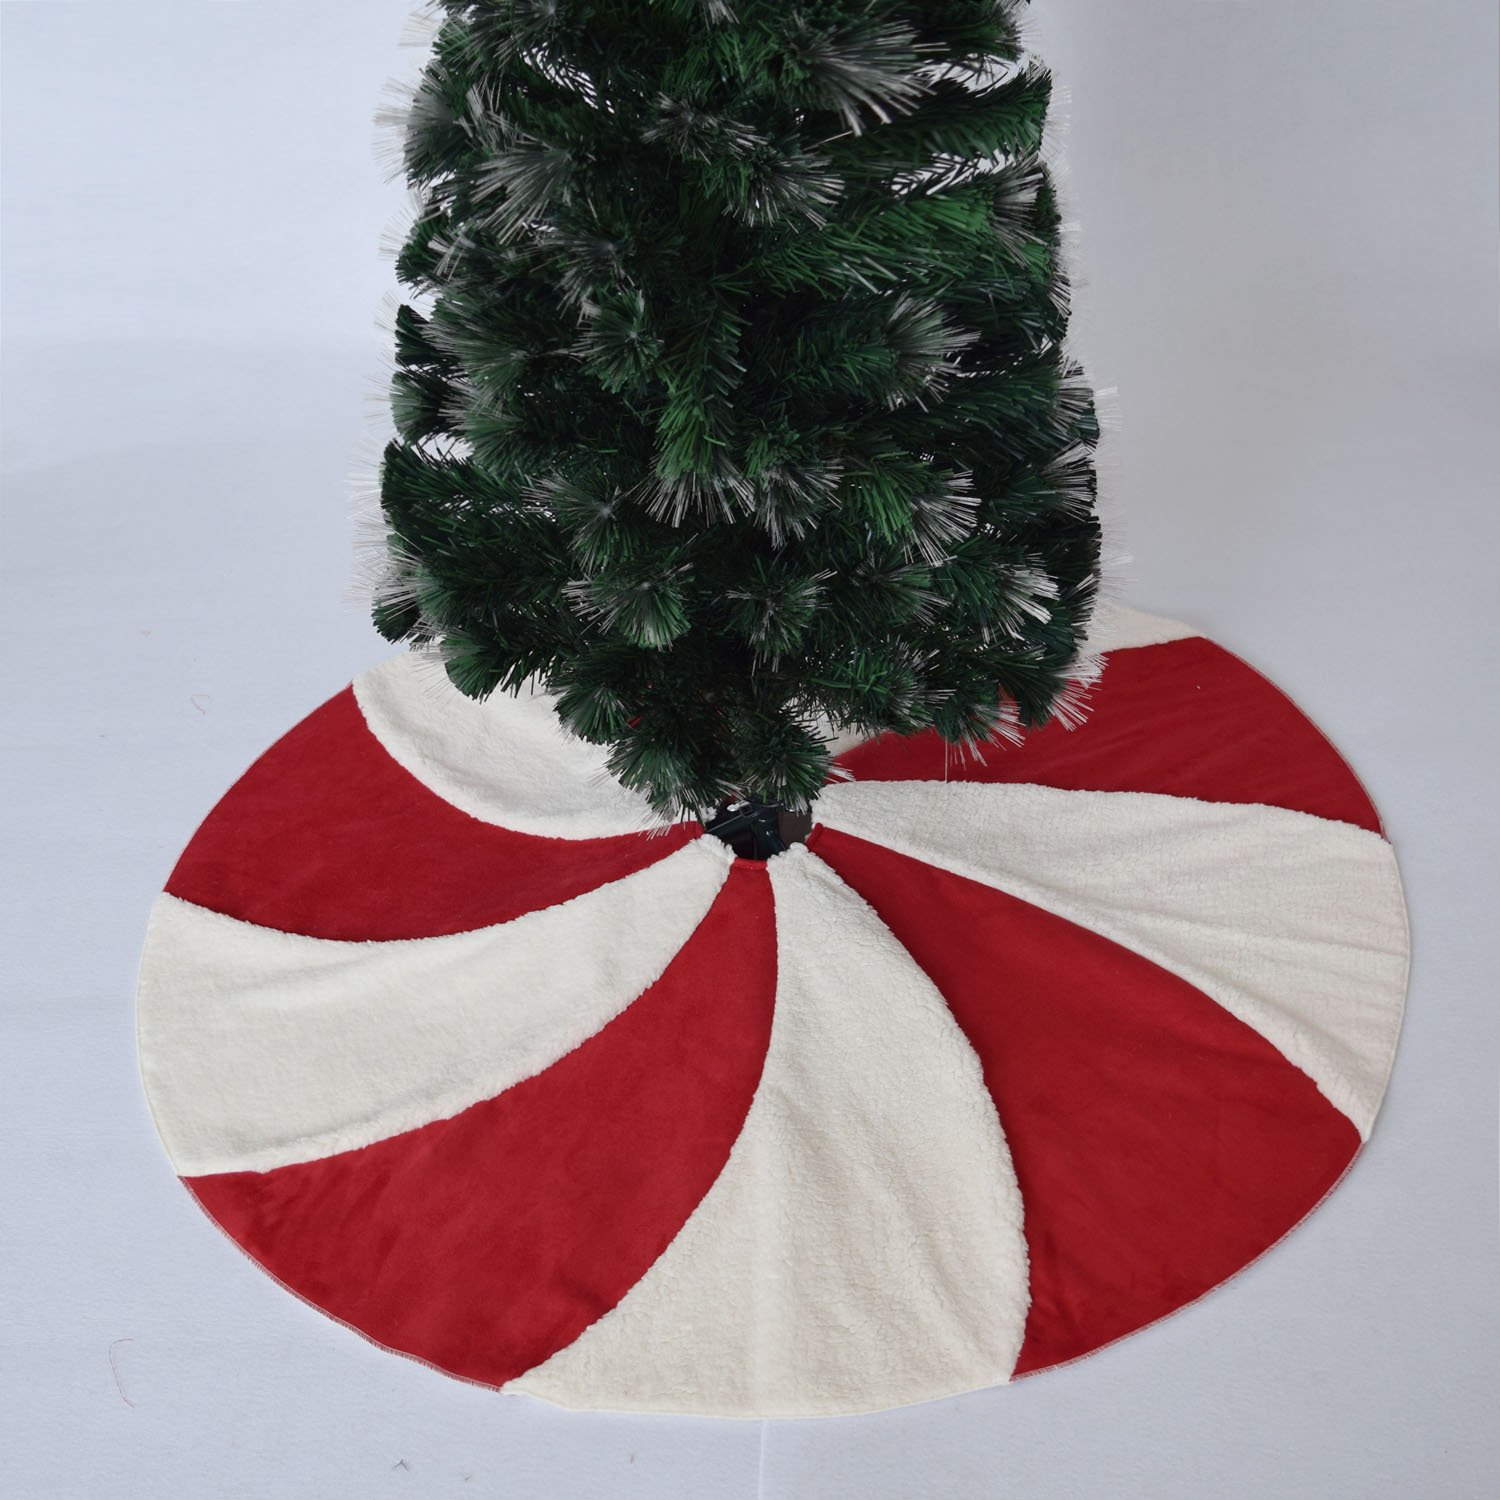 Gireshome 36 Patchwork Red and White sherpa Lollipop Design Christmas Tree Skirt XMAS Tree Decoration Merry Christmas Supplies Christmas Decoration